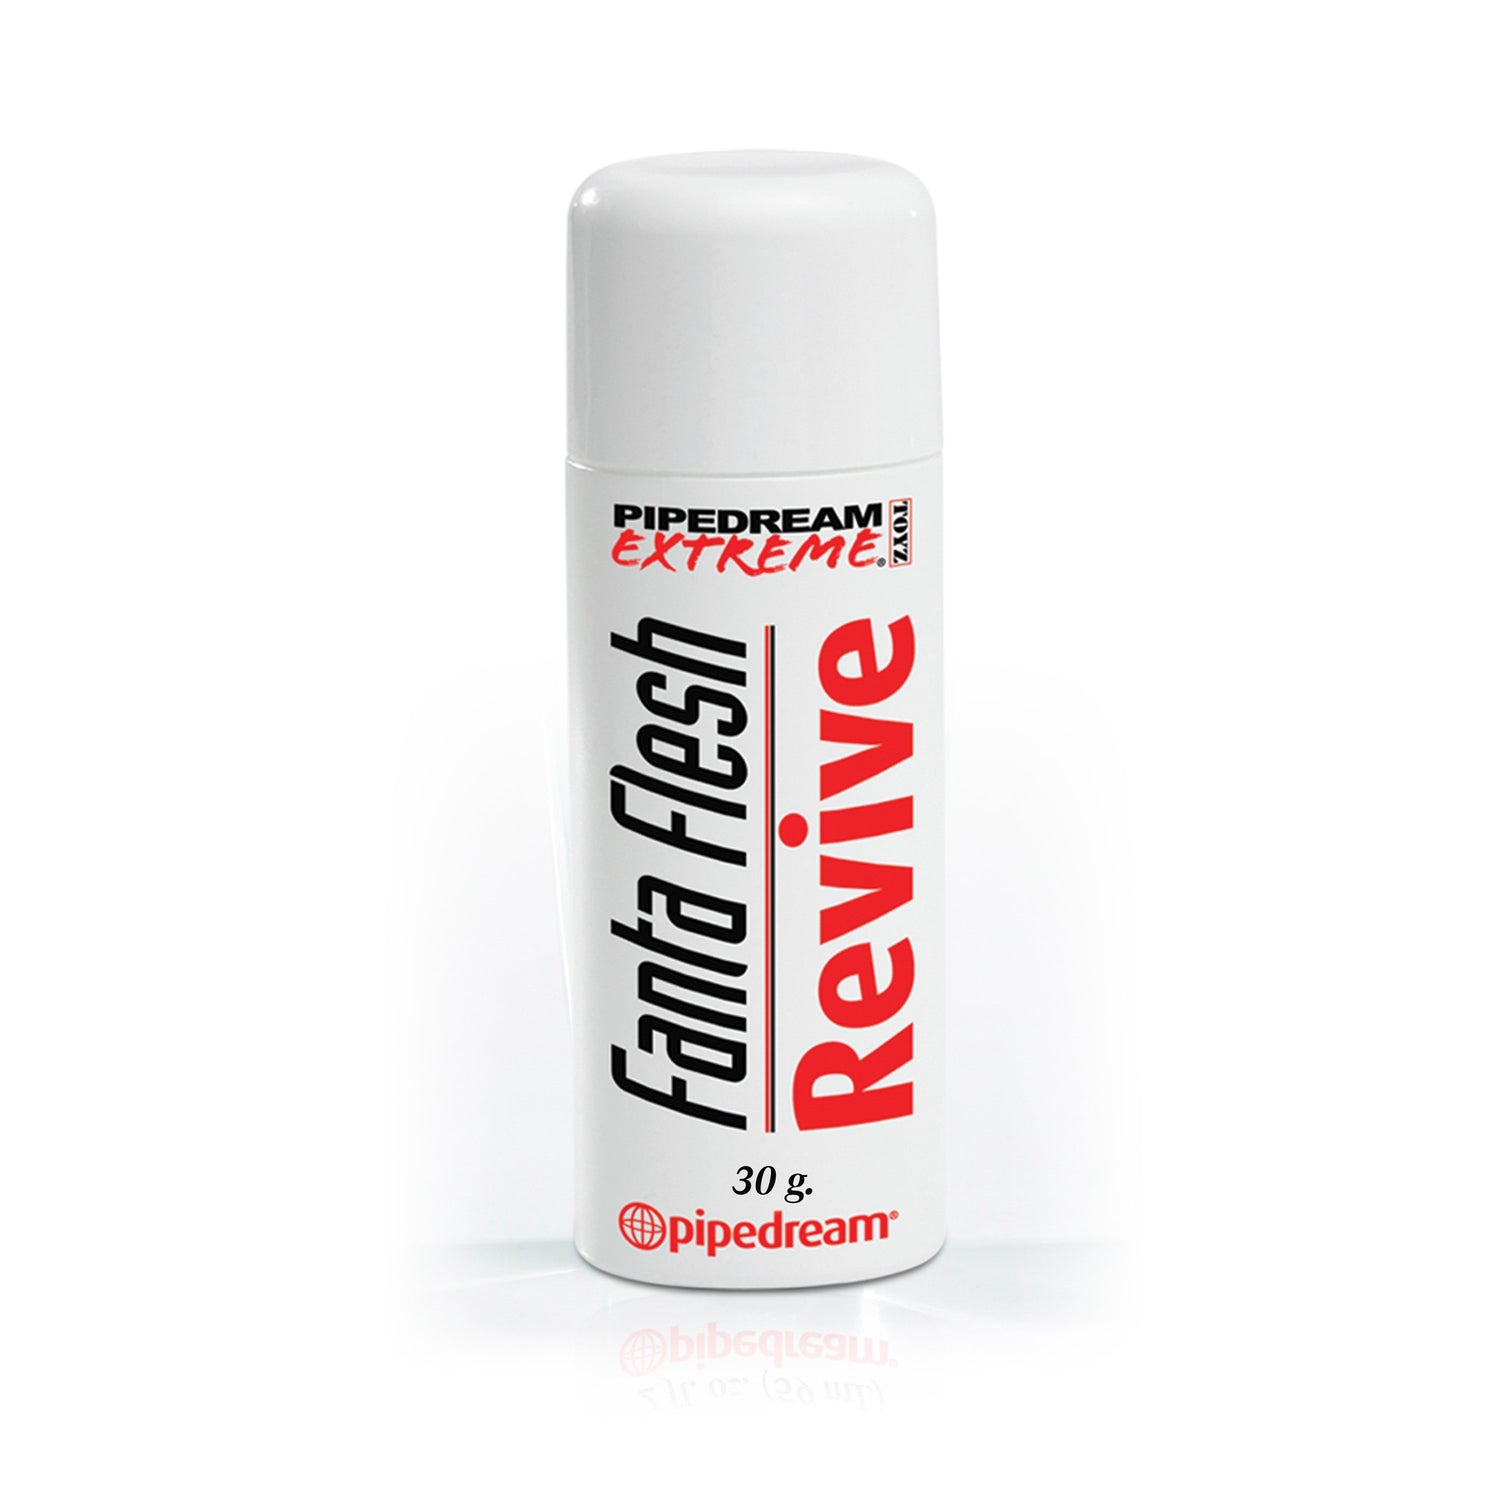 Pipedream - Extreme Toyz Fanta Flesh Revive Powder 1.05oz (White) | CherryAffairs Singapore